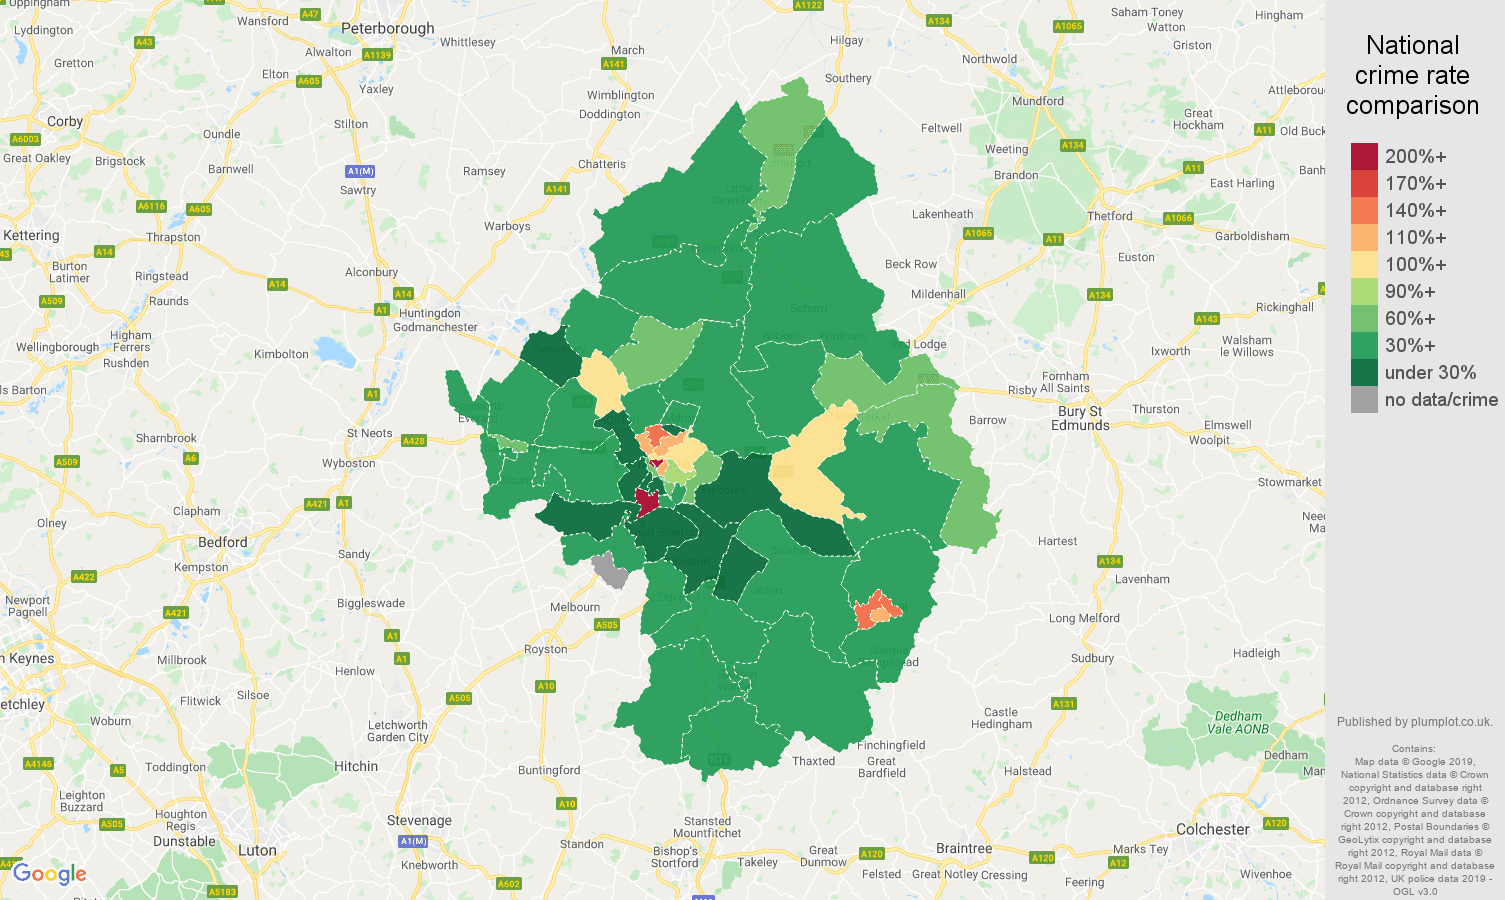 Cambridge public order crime rate comparison map